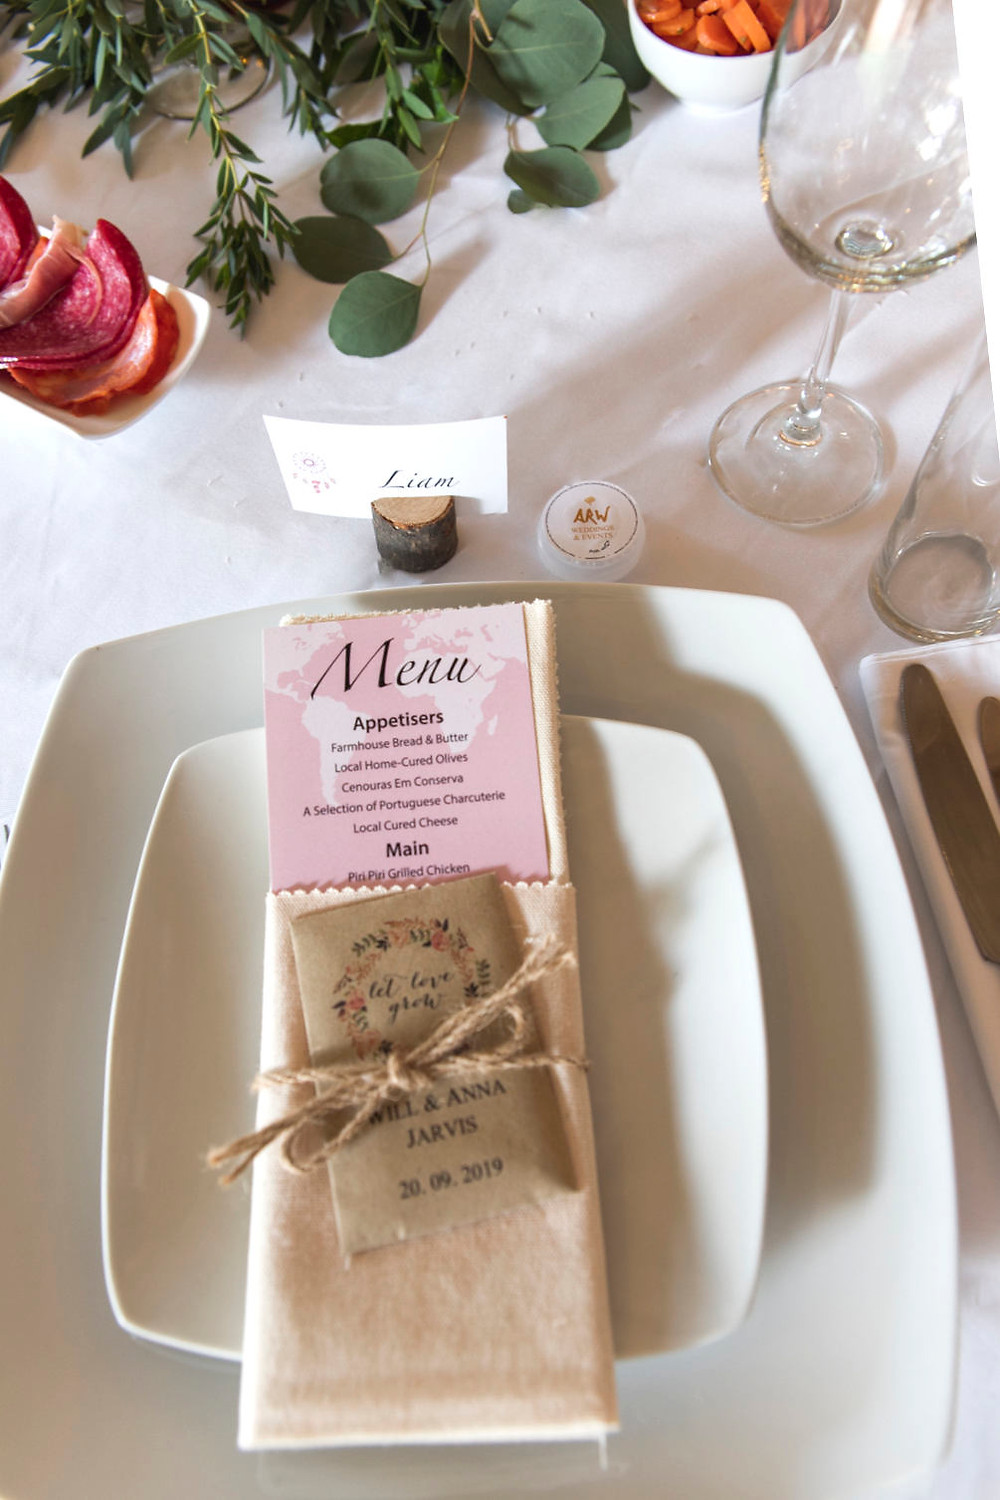 Wedding table with menu card and glass wear